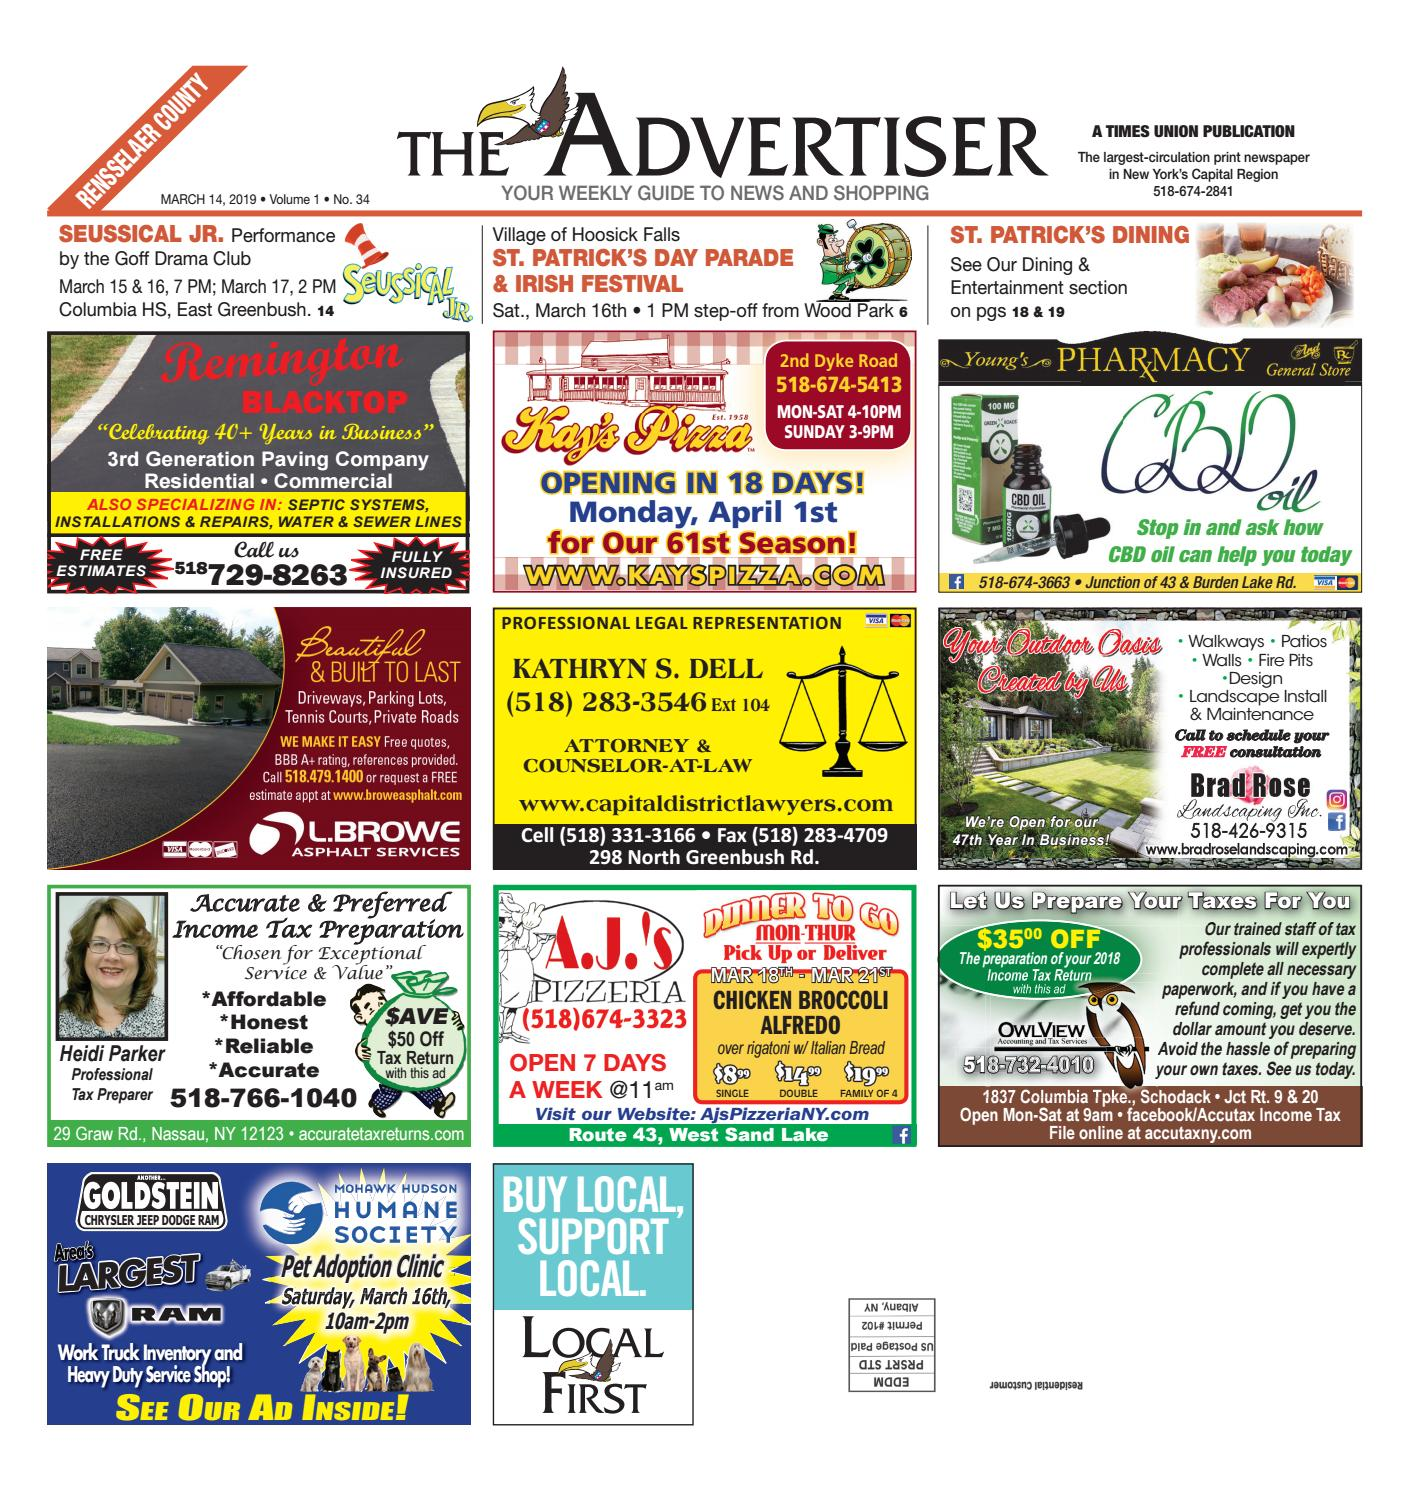 fa6b27d9ade Local First The Advertiser 031419 by Capital Region Weekly ...